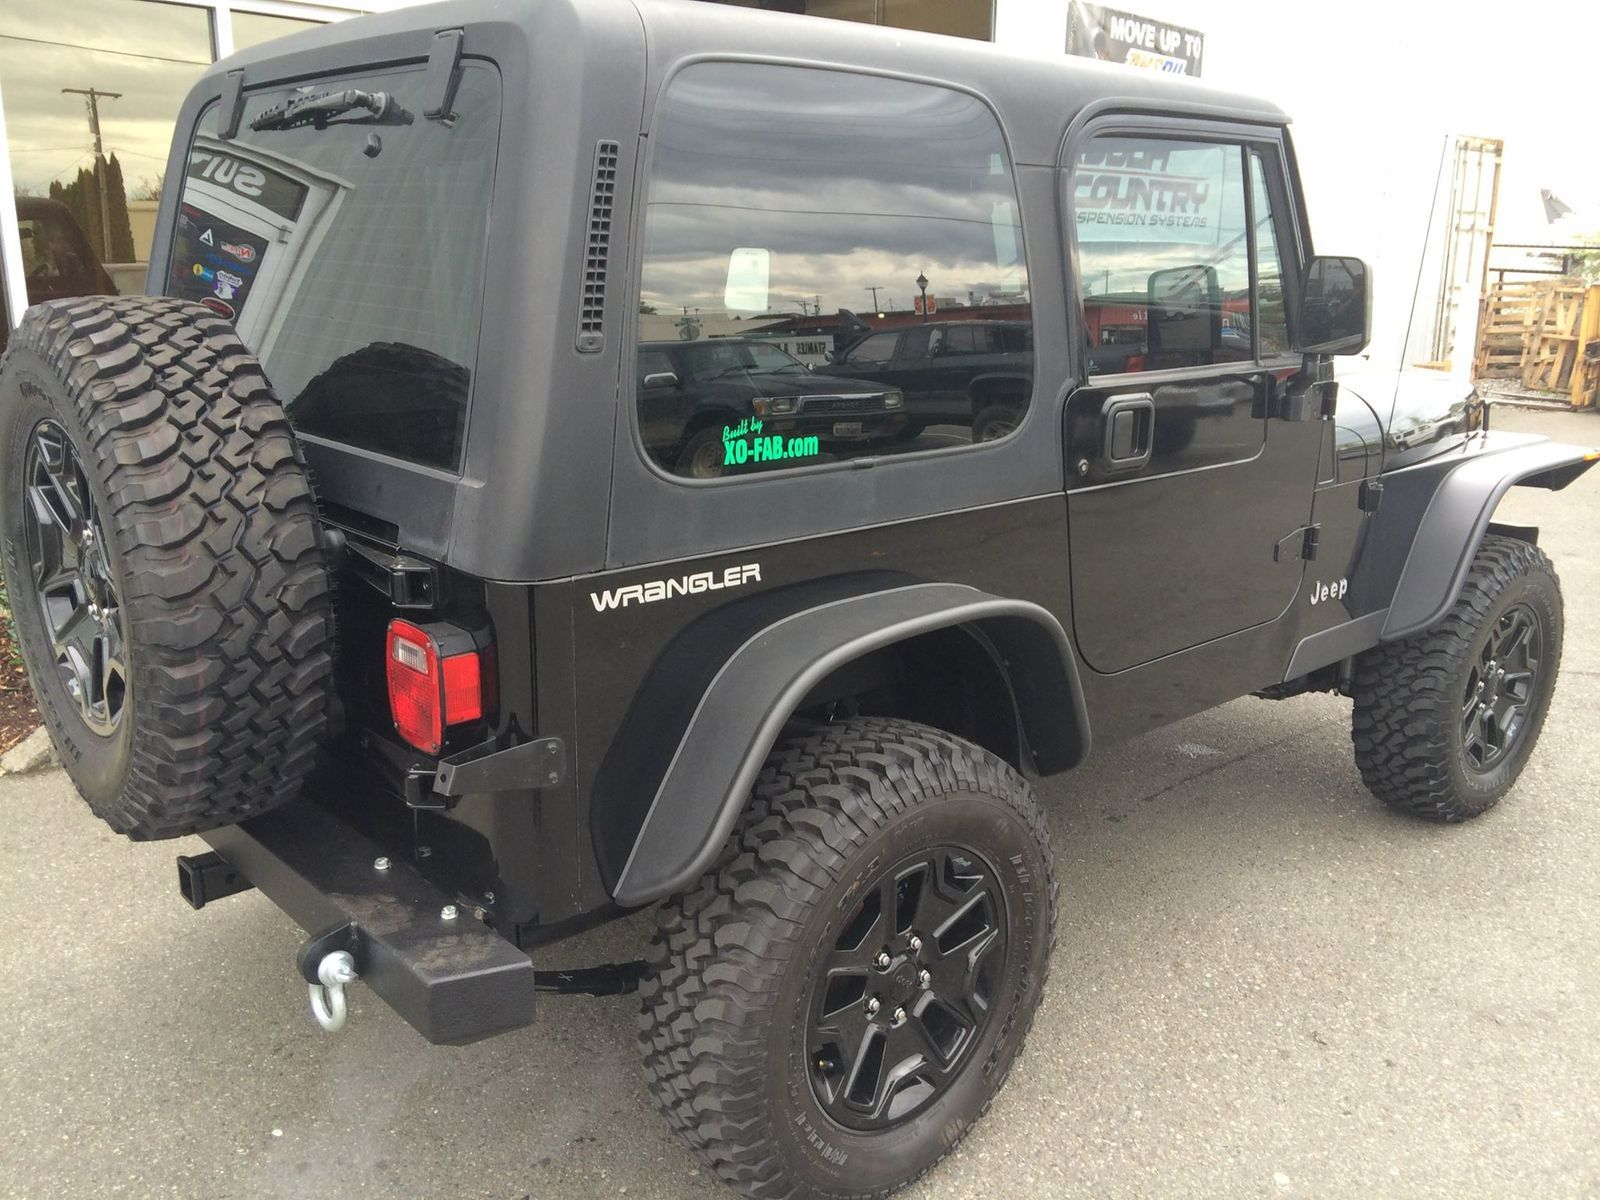 1990 Jeep Wrangler   '90 YJ Jeep with lift, wheels, and custom bumper and fenders